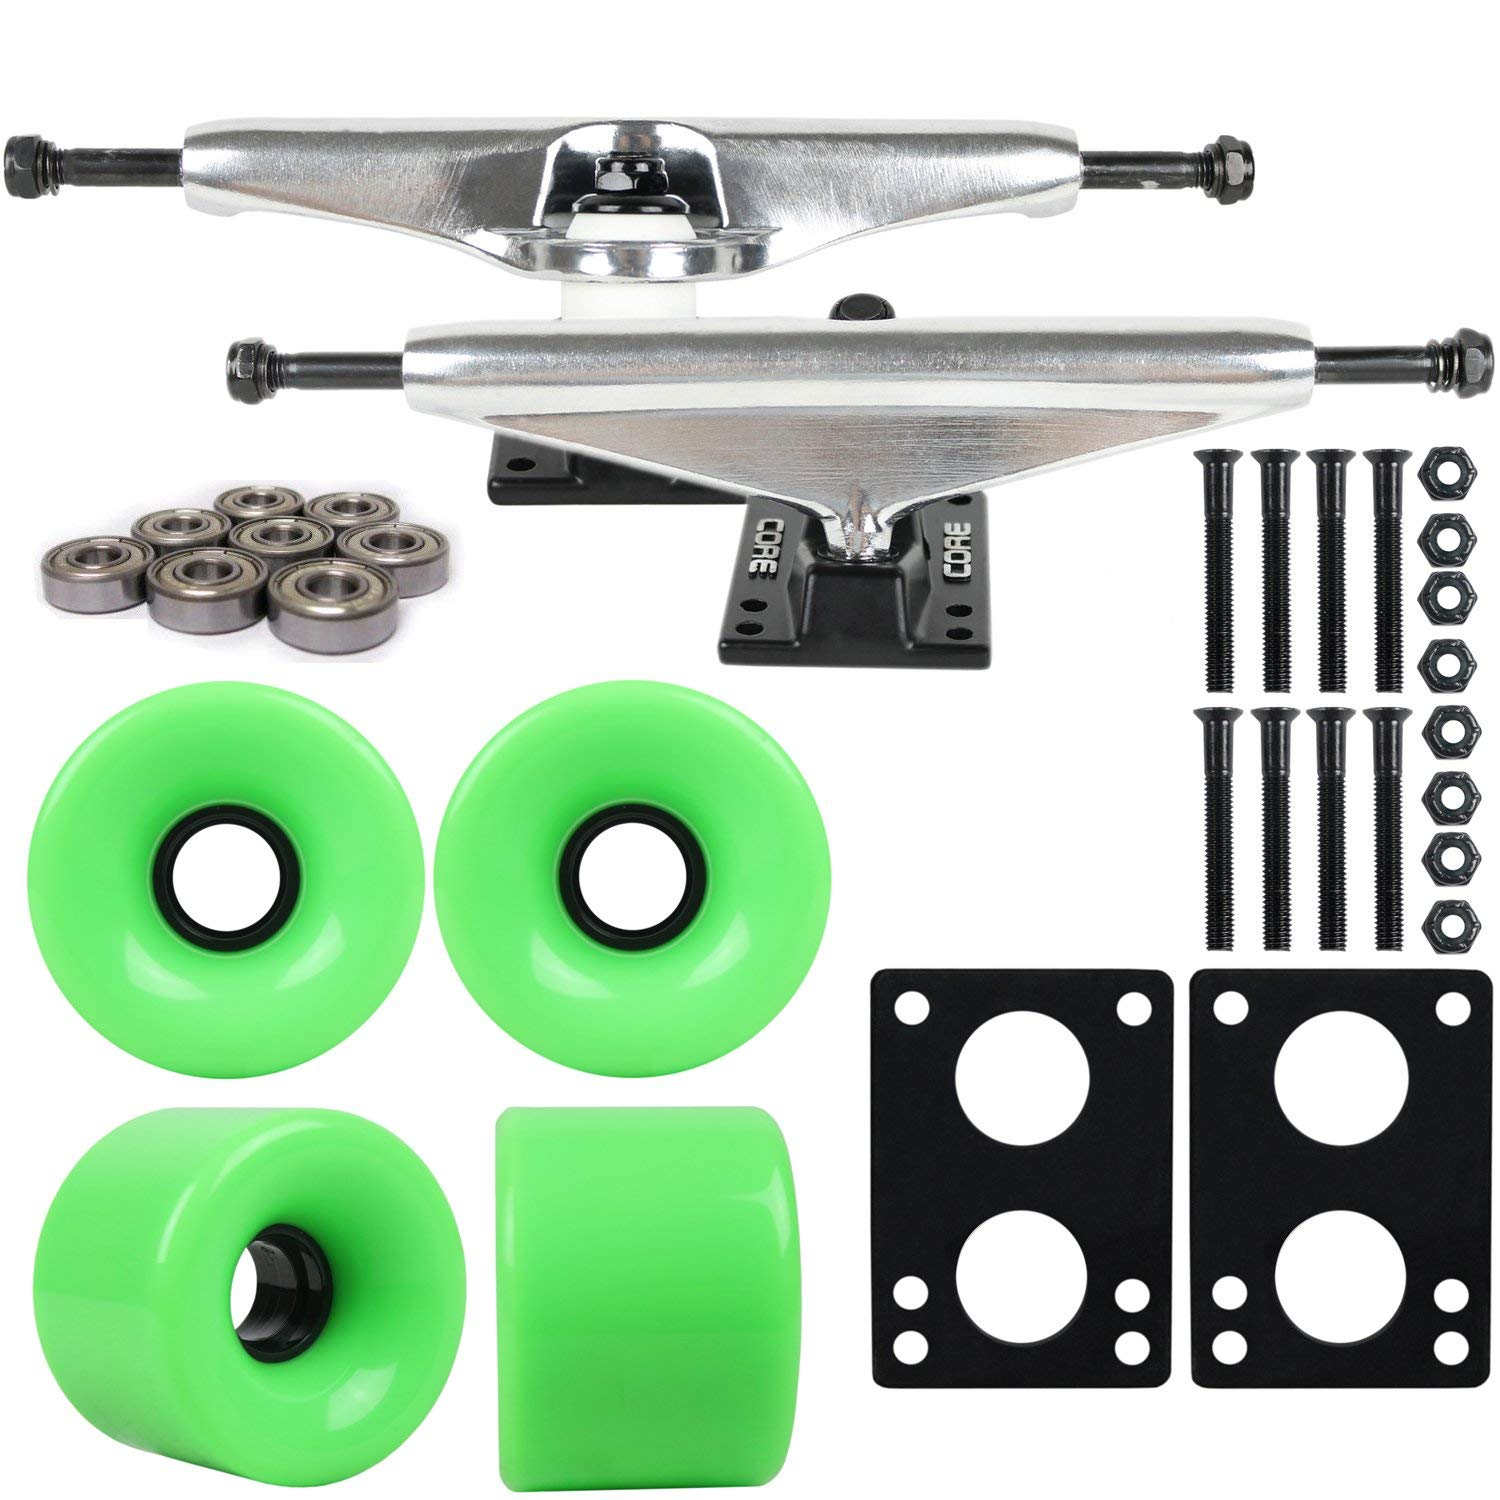 "Longboard Skateboard Trucks Combo Set 76mm Blank Wheels with Silver Trucks, Bearings, and Hardware Package (76mm Green Wheels, 6.0 (9.63"") Silver Trucks)"